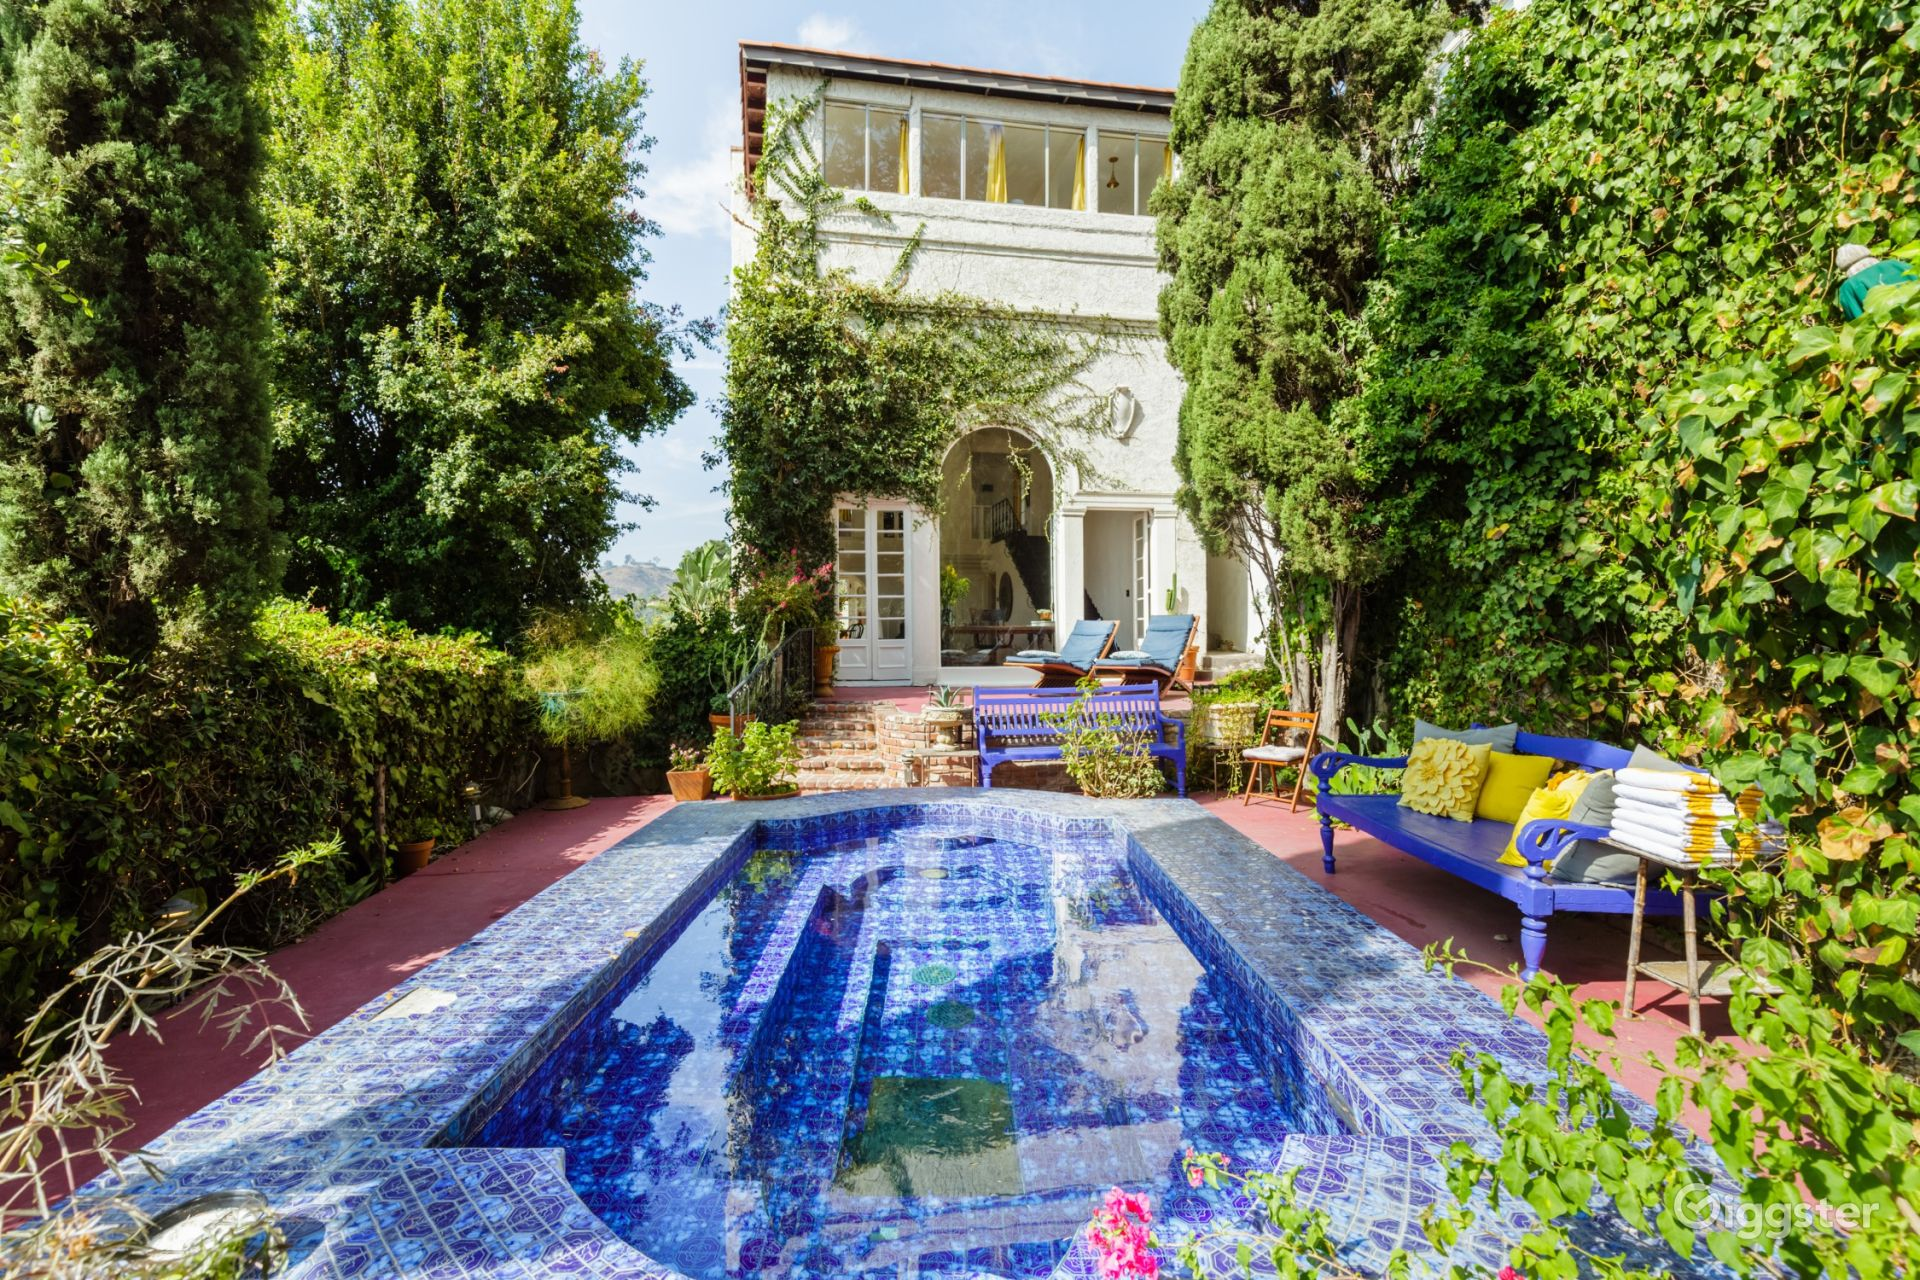 Spanish Style Retro Hollywood Home in Hollywood Los Angeles Rental